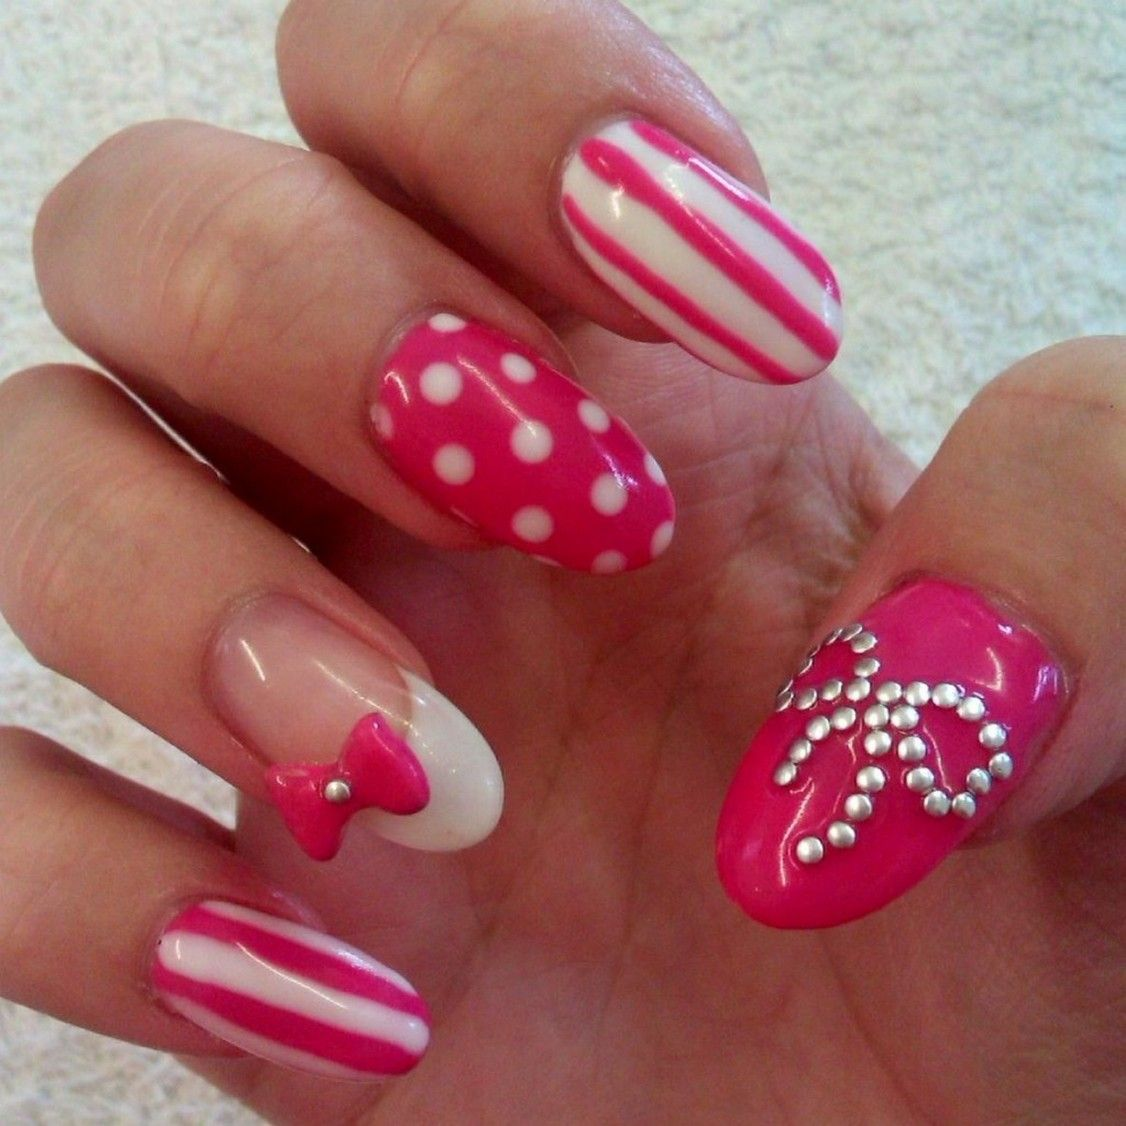 Acrylic Nail Art Designs 2014 Want To Get This Best Image About